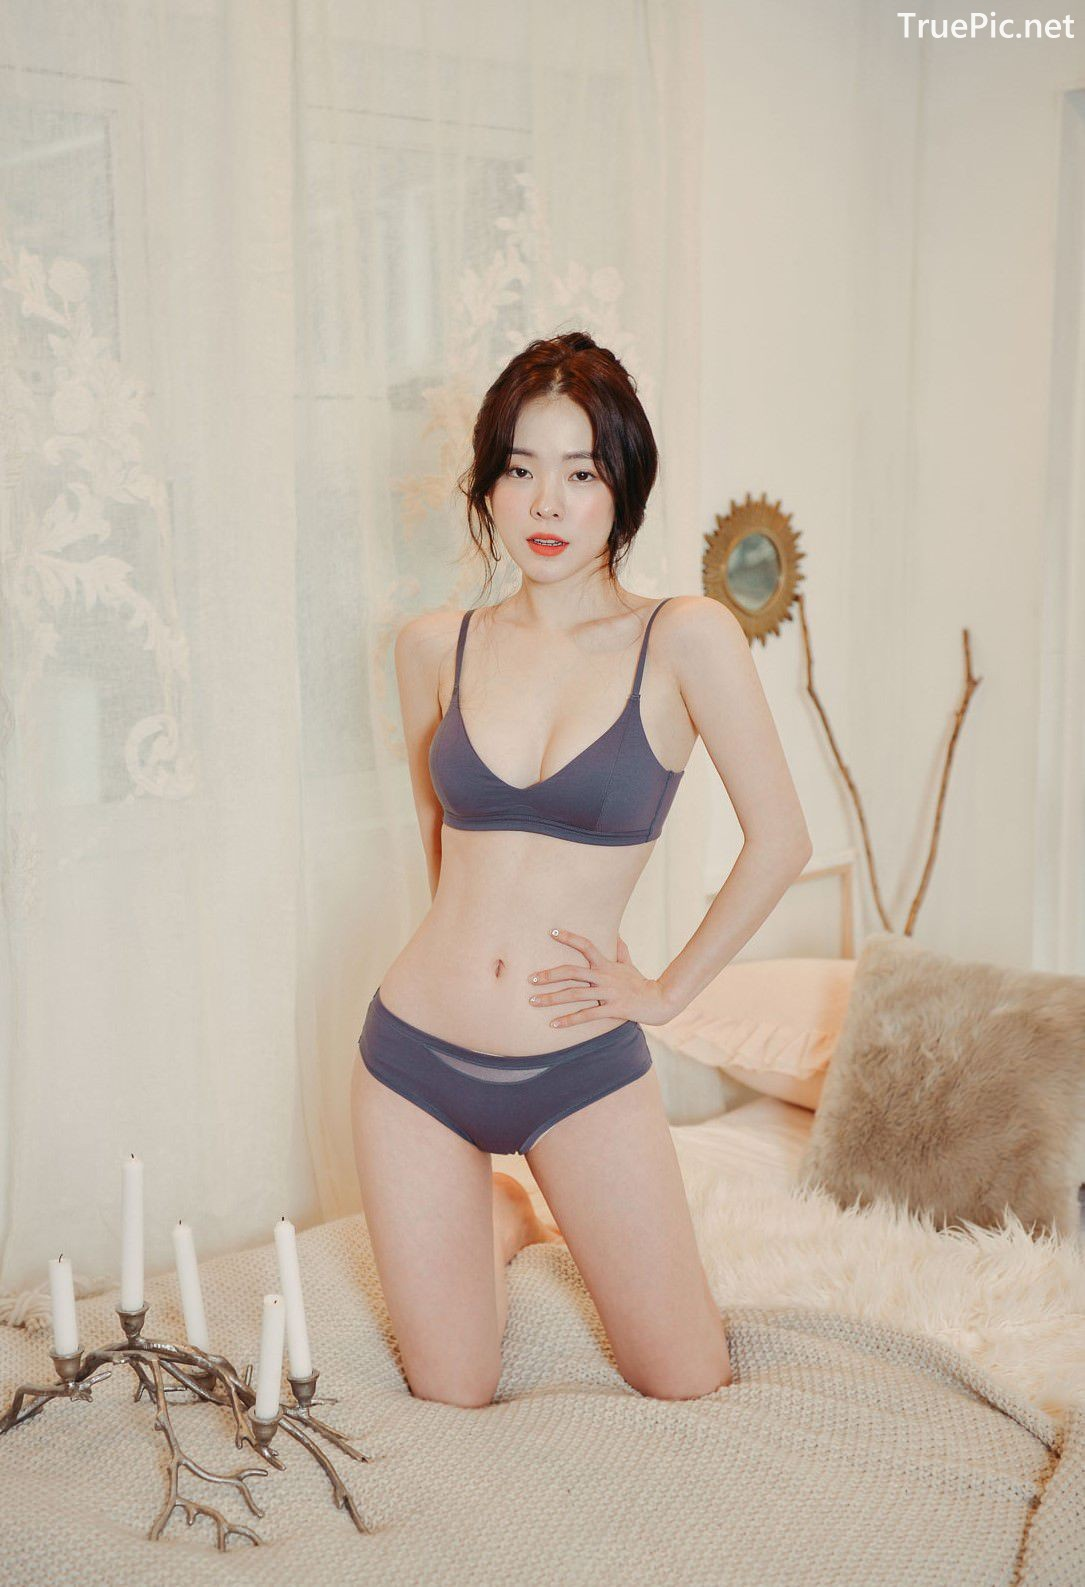 Image-Korean-Lingerie-Queen-Haneul-Lingerie-Shop-Haneul-Colection-TruePic.net- Picture-1